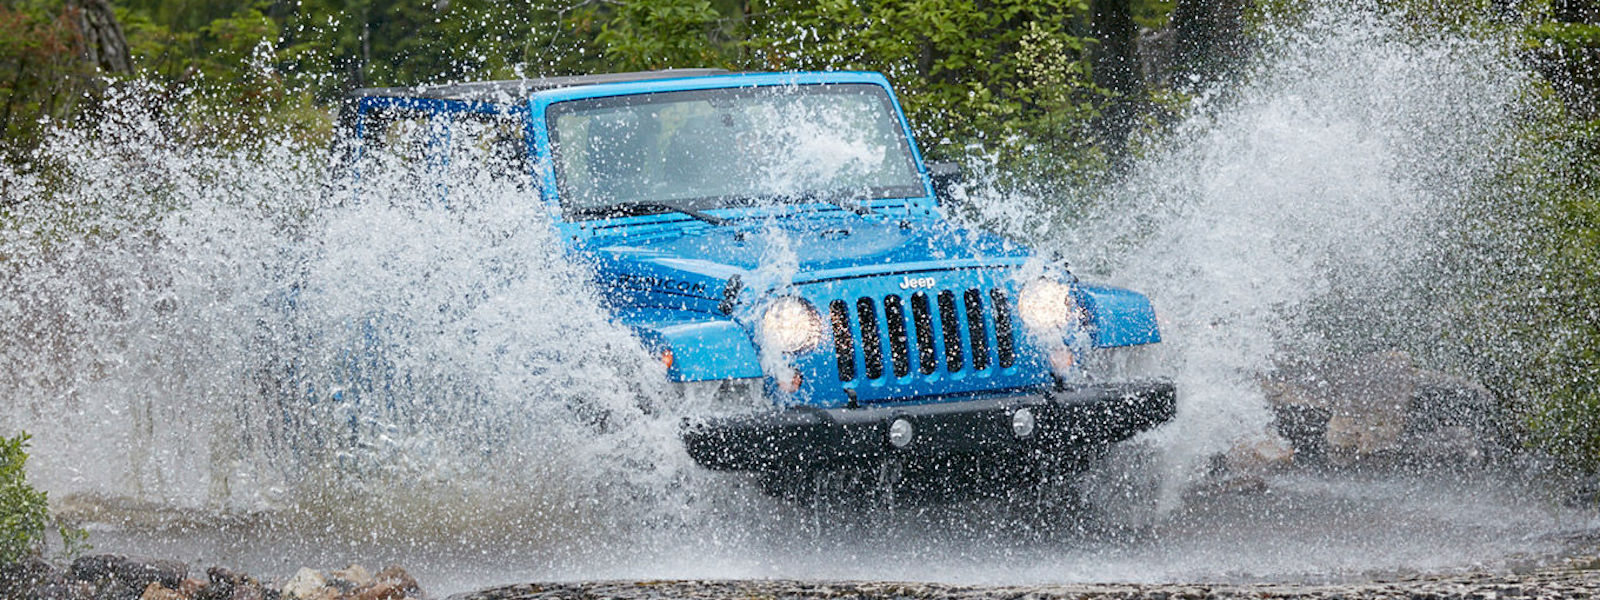 Performance in a 2016 Jeep Wrangler